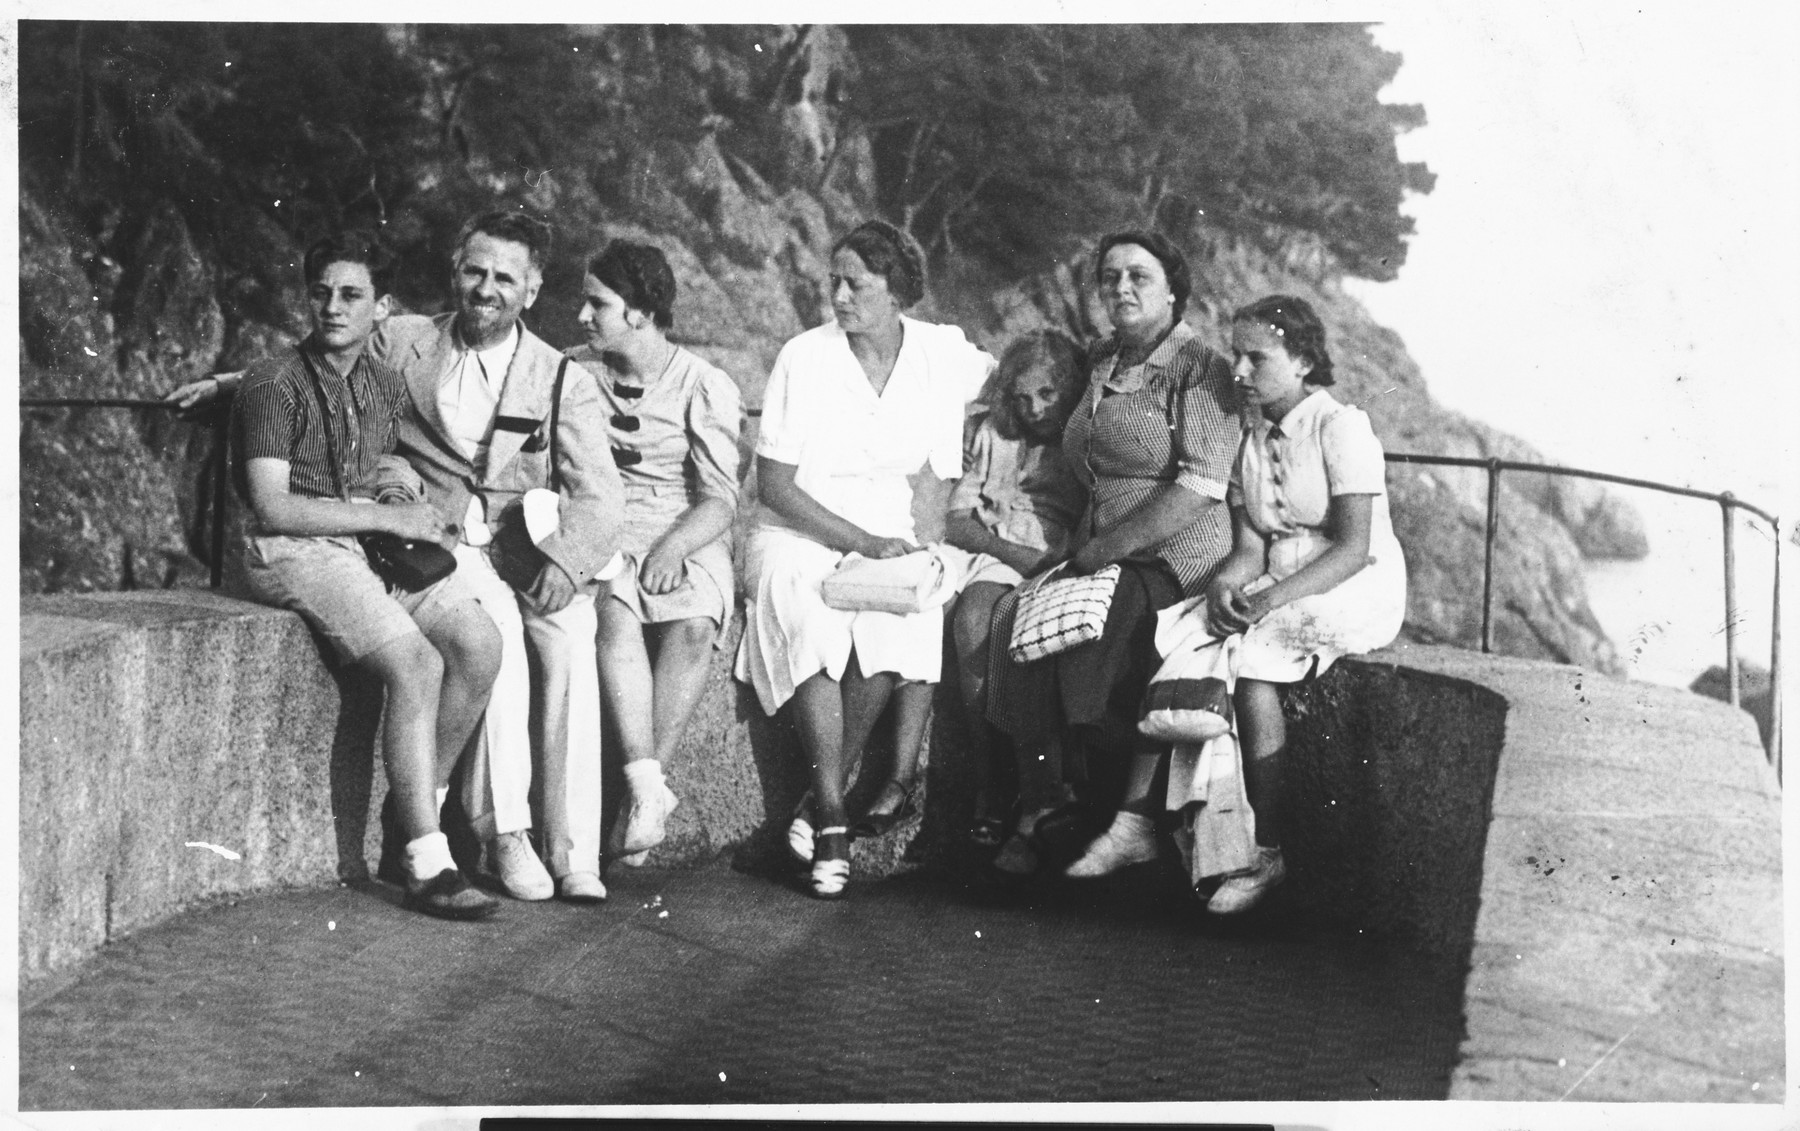 The Jemolo family visits the Falcos at their summer home in Portofino.  The Jemolos later rescued Mrs. Falco and her two daughters.  From left to right are Guglielmo Luigi Jemolo, Mario Falco, Adele Maria Jemolo, Germana Ravenna, Graziella Falco, Gabriella Falco, Anna Marcella Falco.